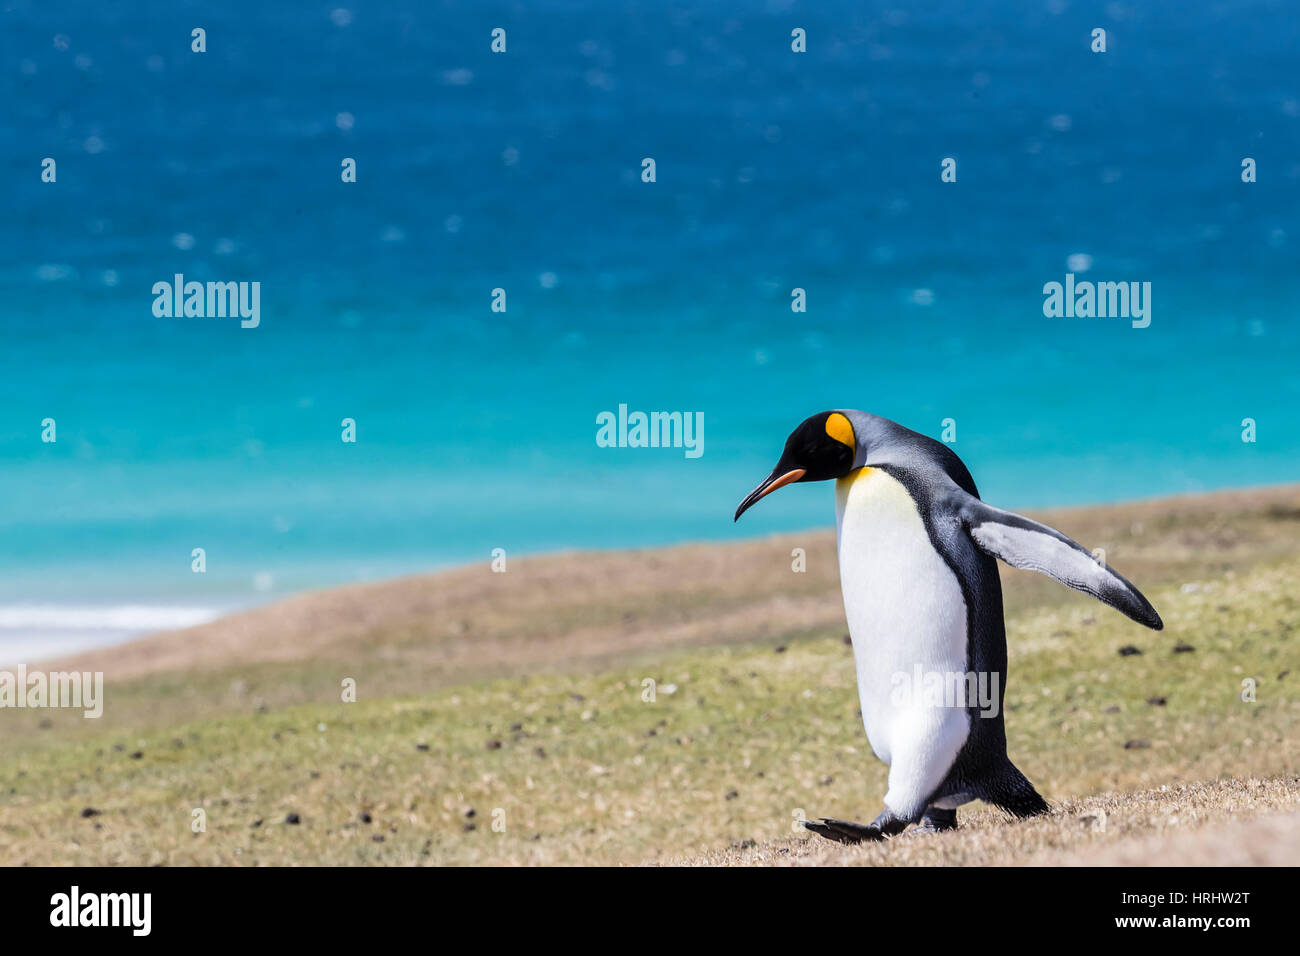 Adult king penguin (Aptenodytes patagonicus) on the grassy slopes of Saunders Island, Falkland Islands - Stock Image